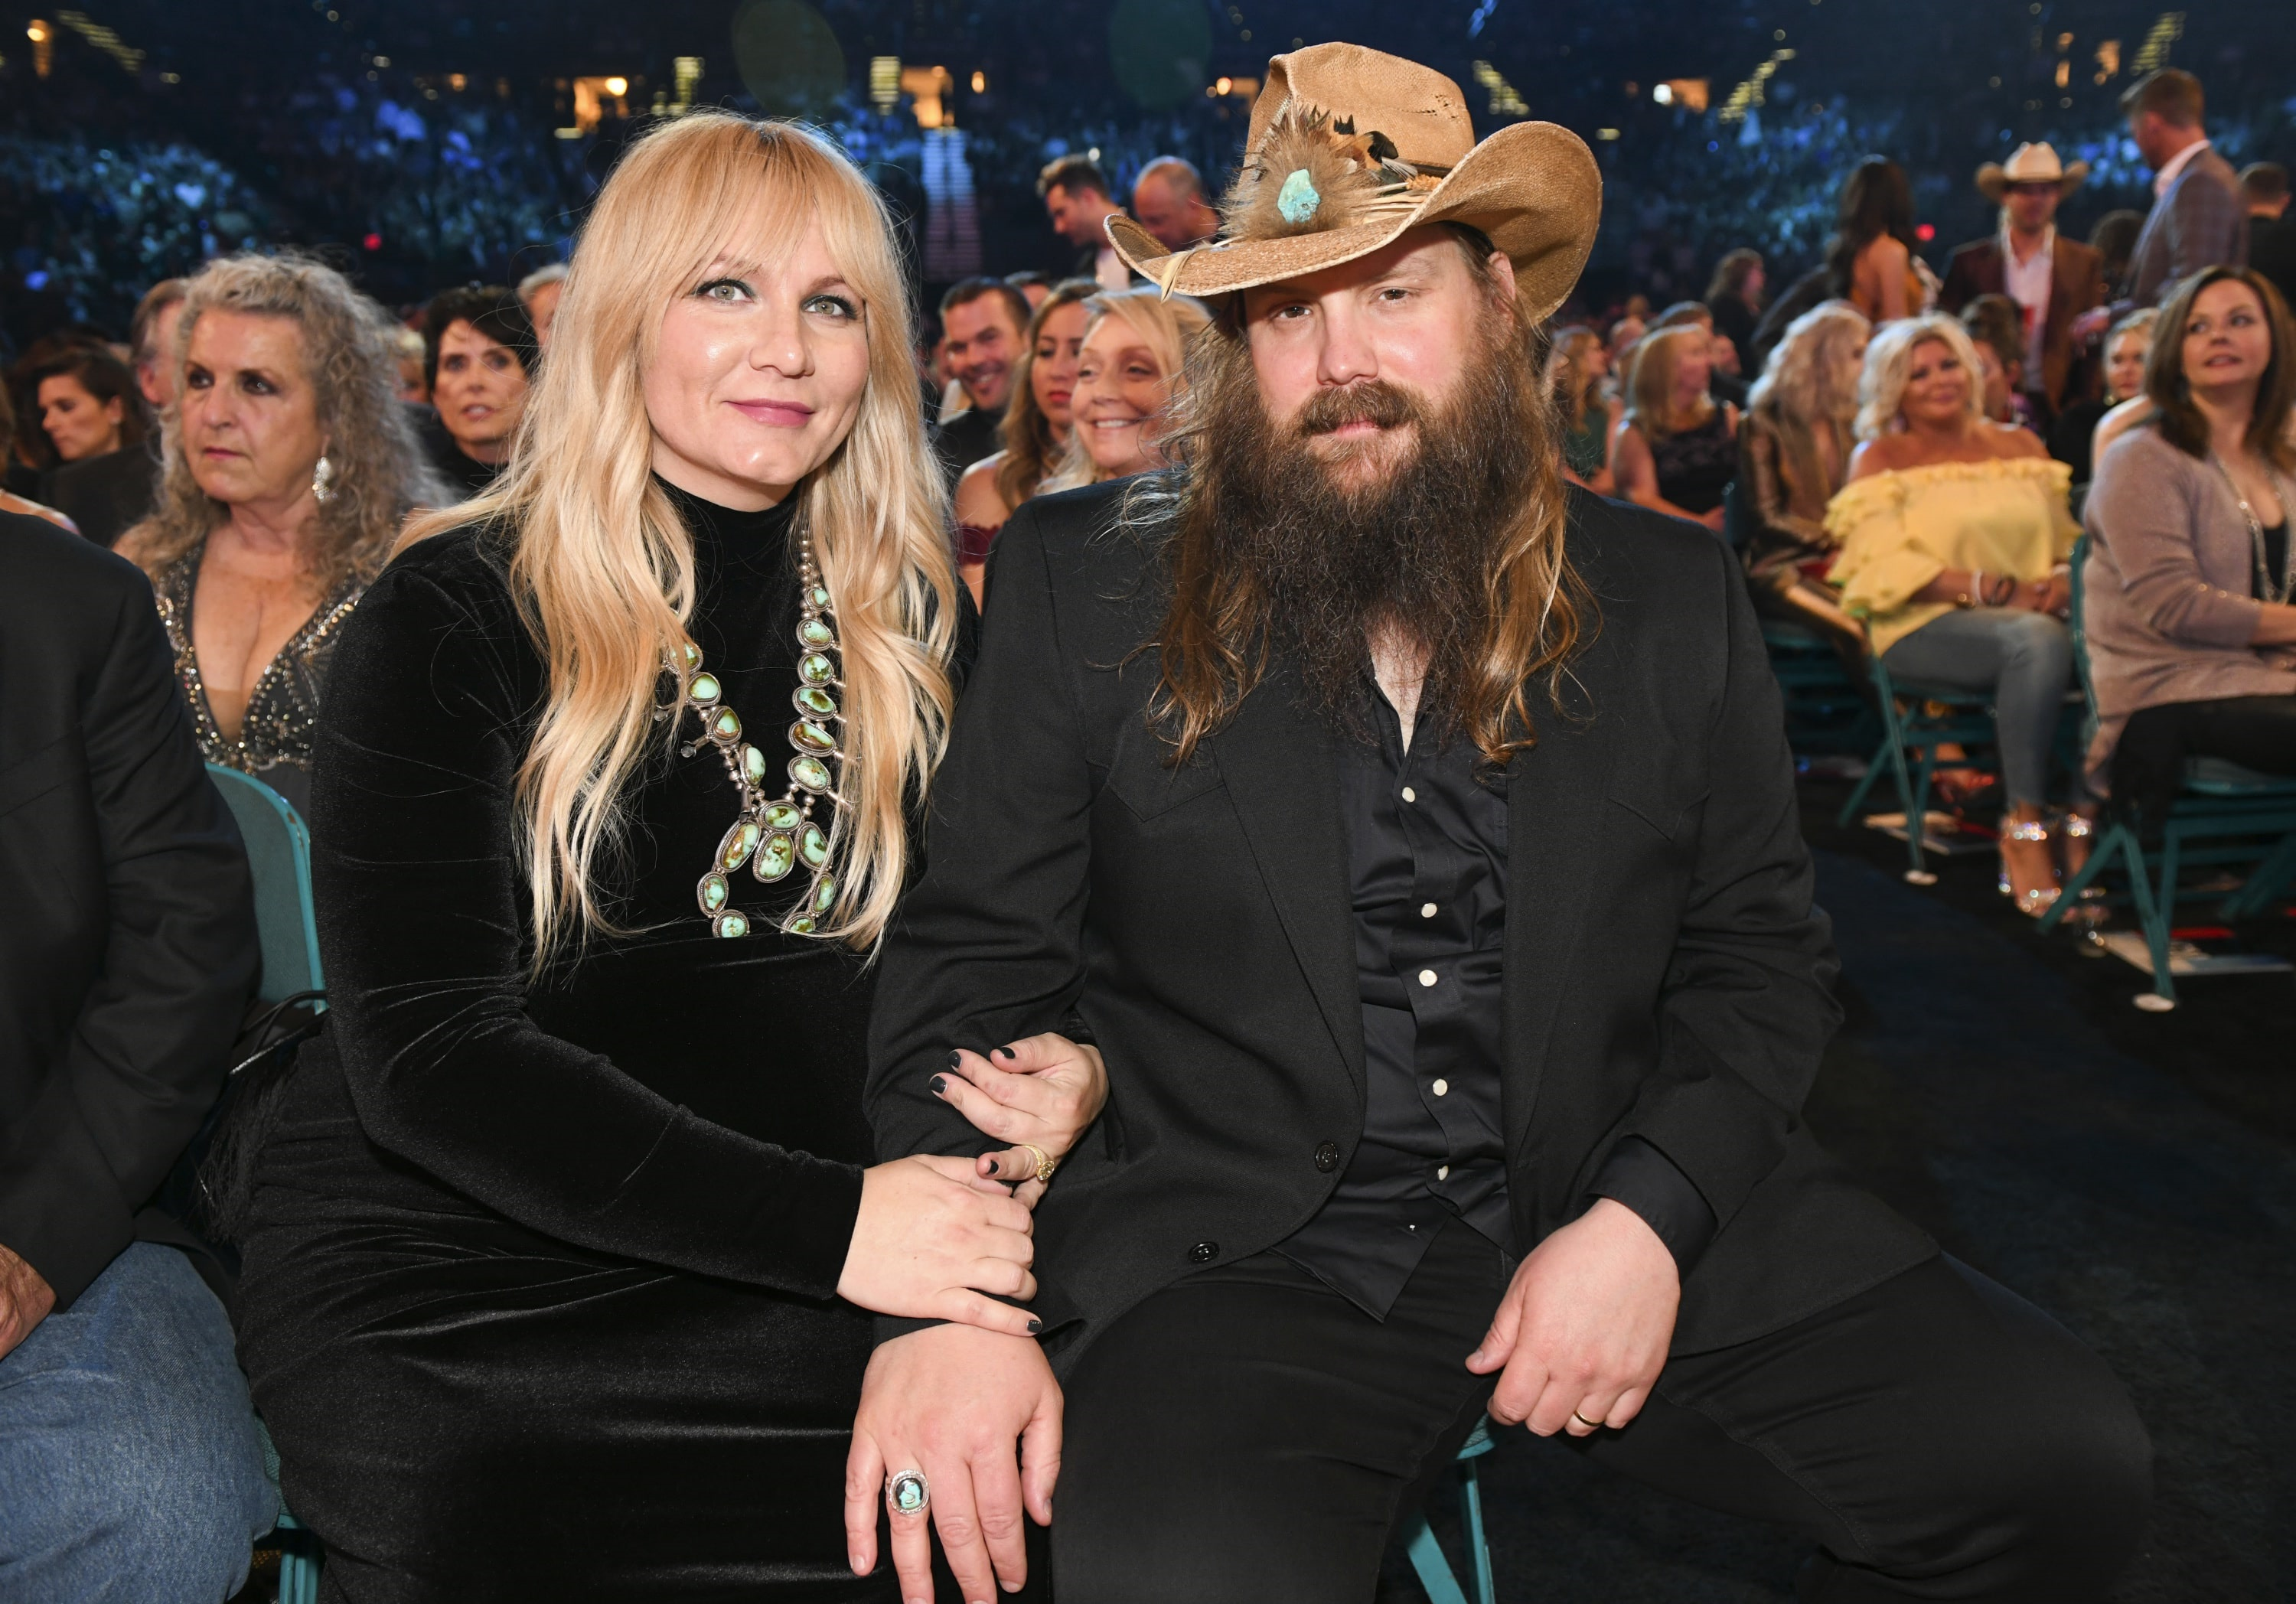 Chris Stapleton and wife Morgane during the 54TH ACADEMY OF COUNTRY MUSIC AWARDS, to broadcast LIVE from MGM Grand Garden Arena in Las Vegas Sunday, April 7, 2019 (8:00-11:00 PM, ET/delayed PT) on the CBS Television Network. Photo: Sam Morris/CBS ©2019 CBS Broadcasting, Inc. All Rights Reserved